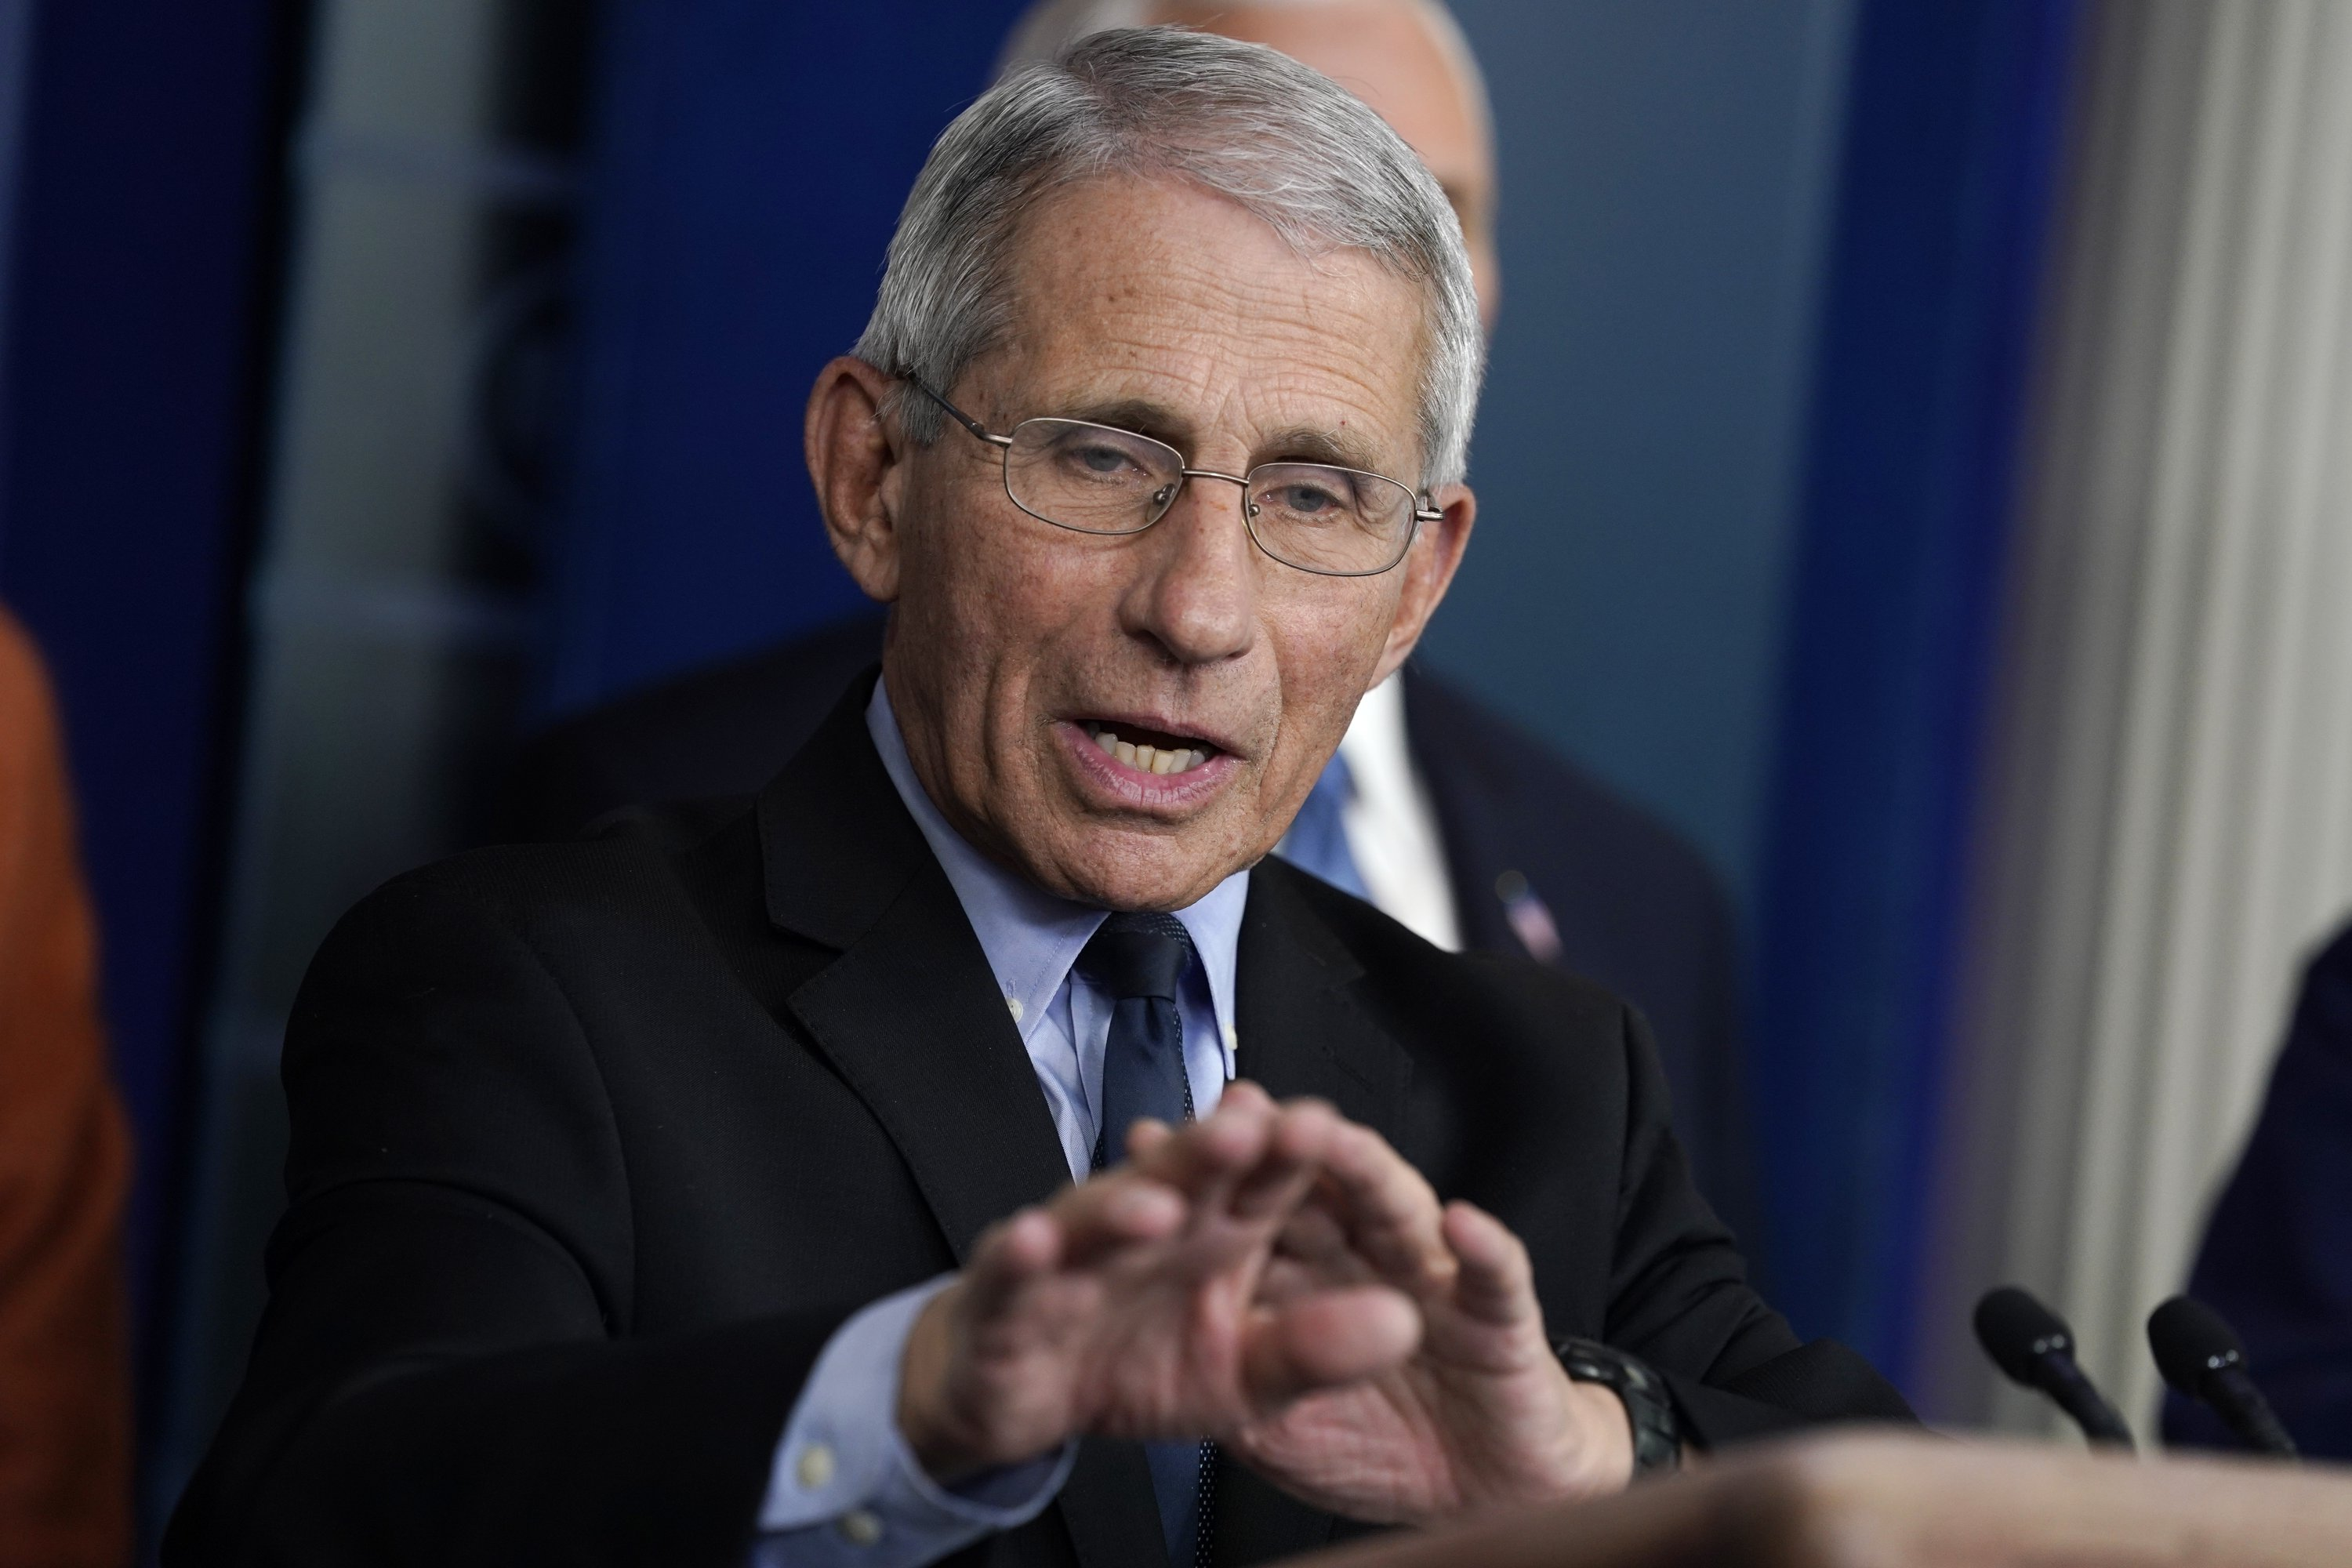 Fauci says he can't stop Trump from talking at briefings